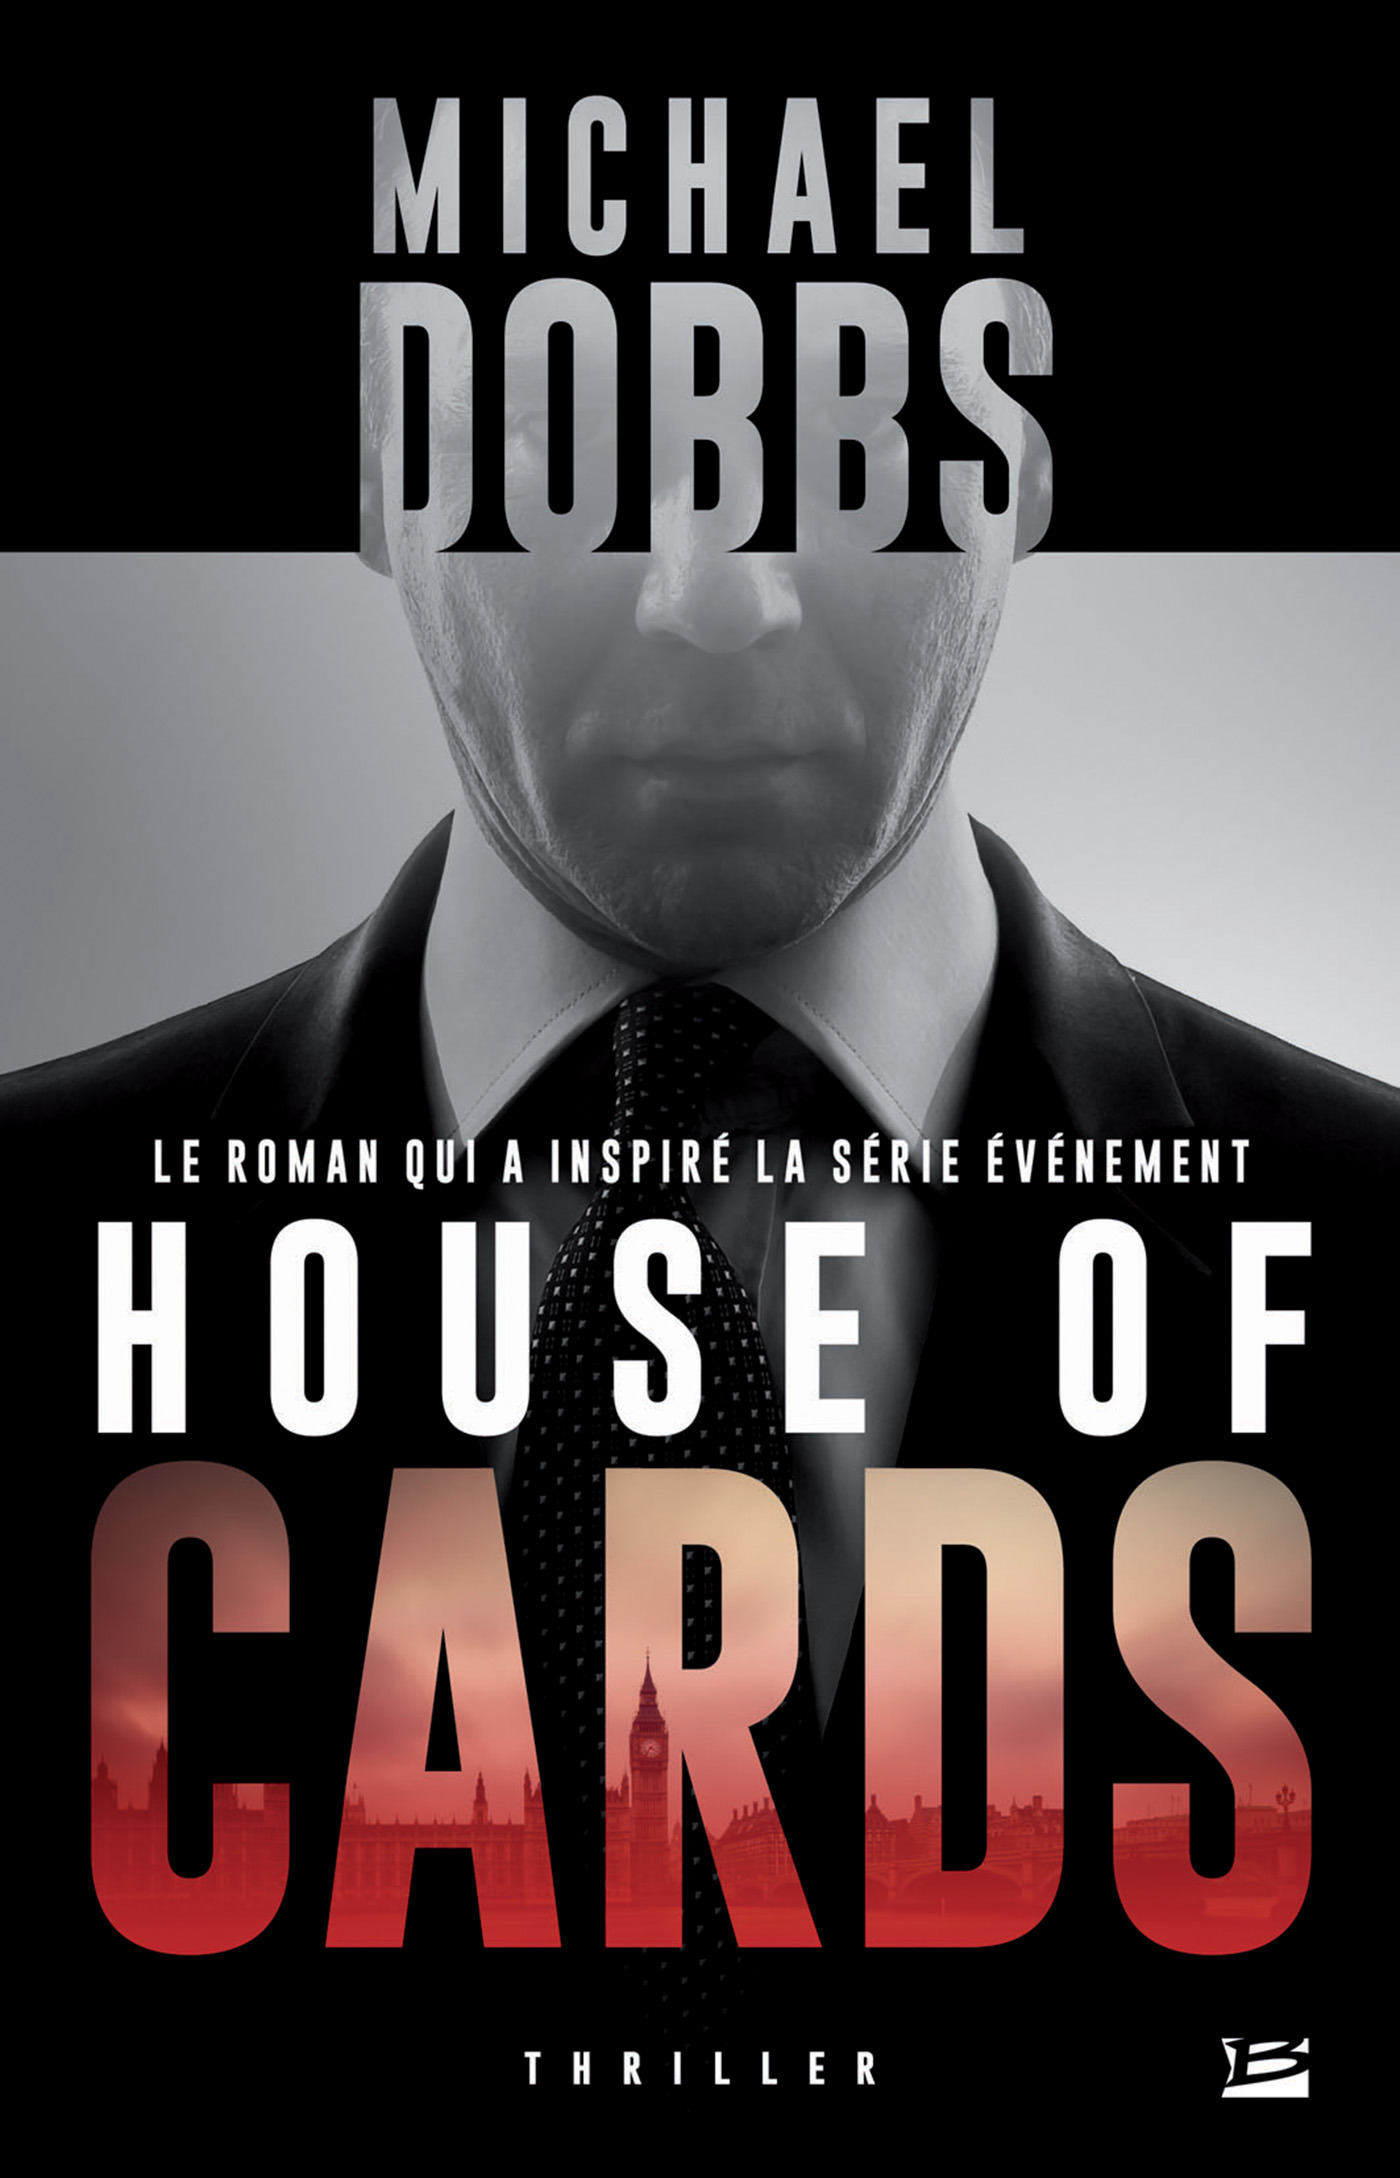 House of cards t.1